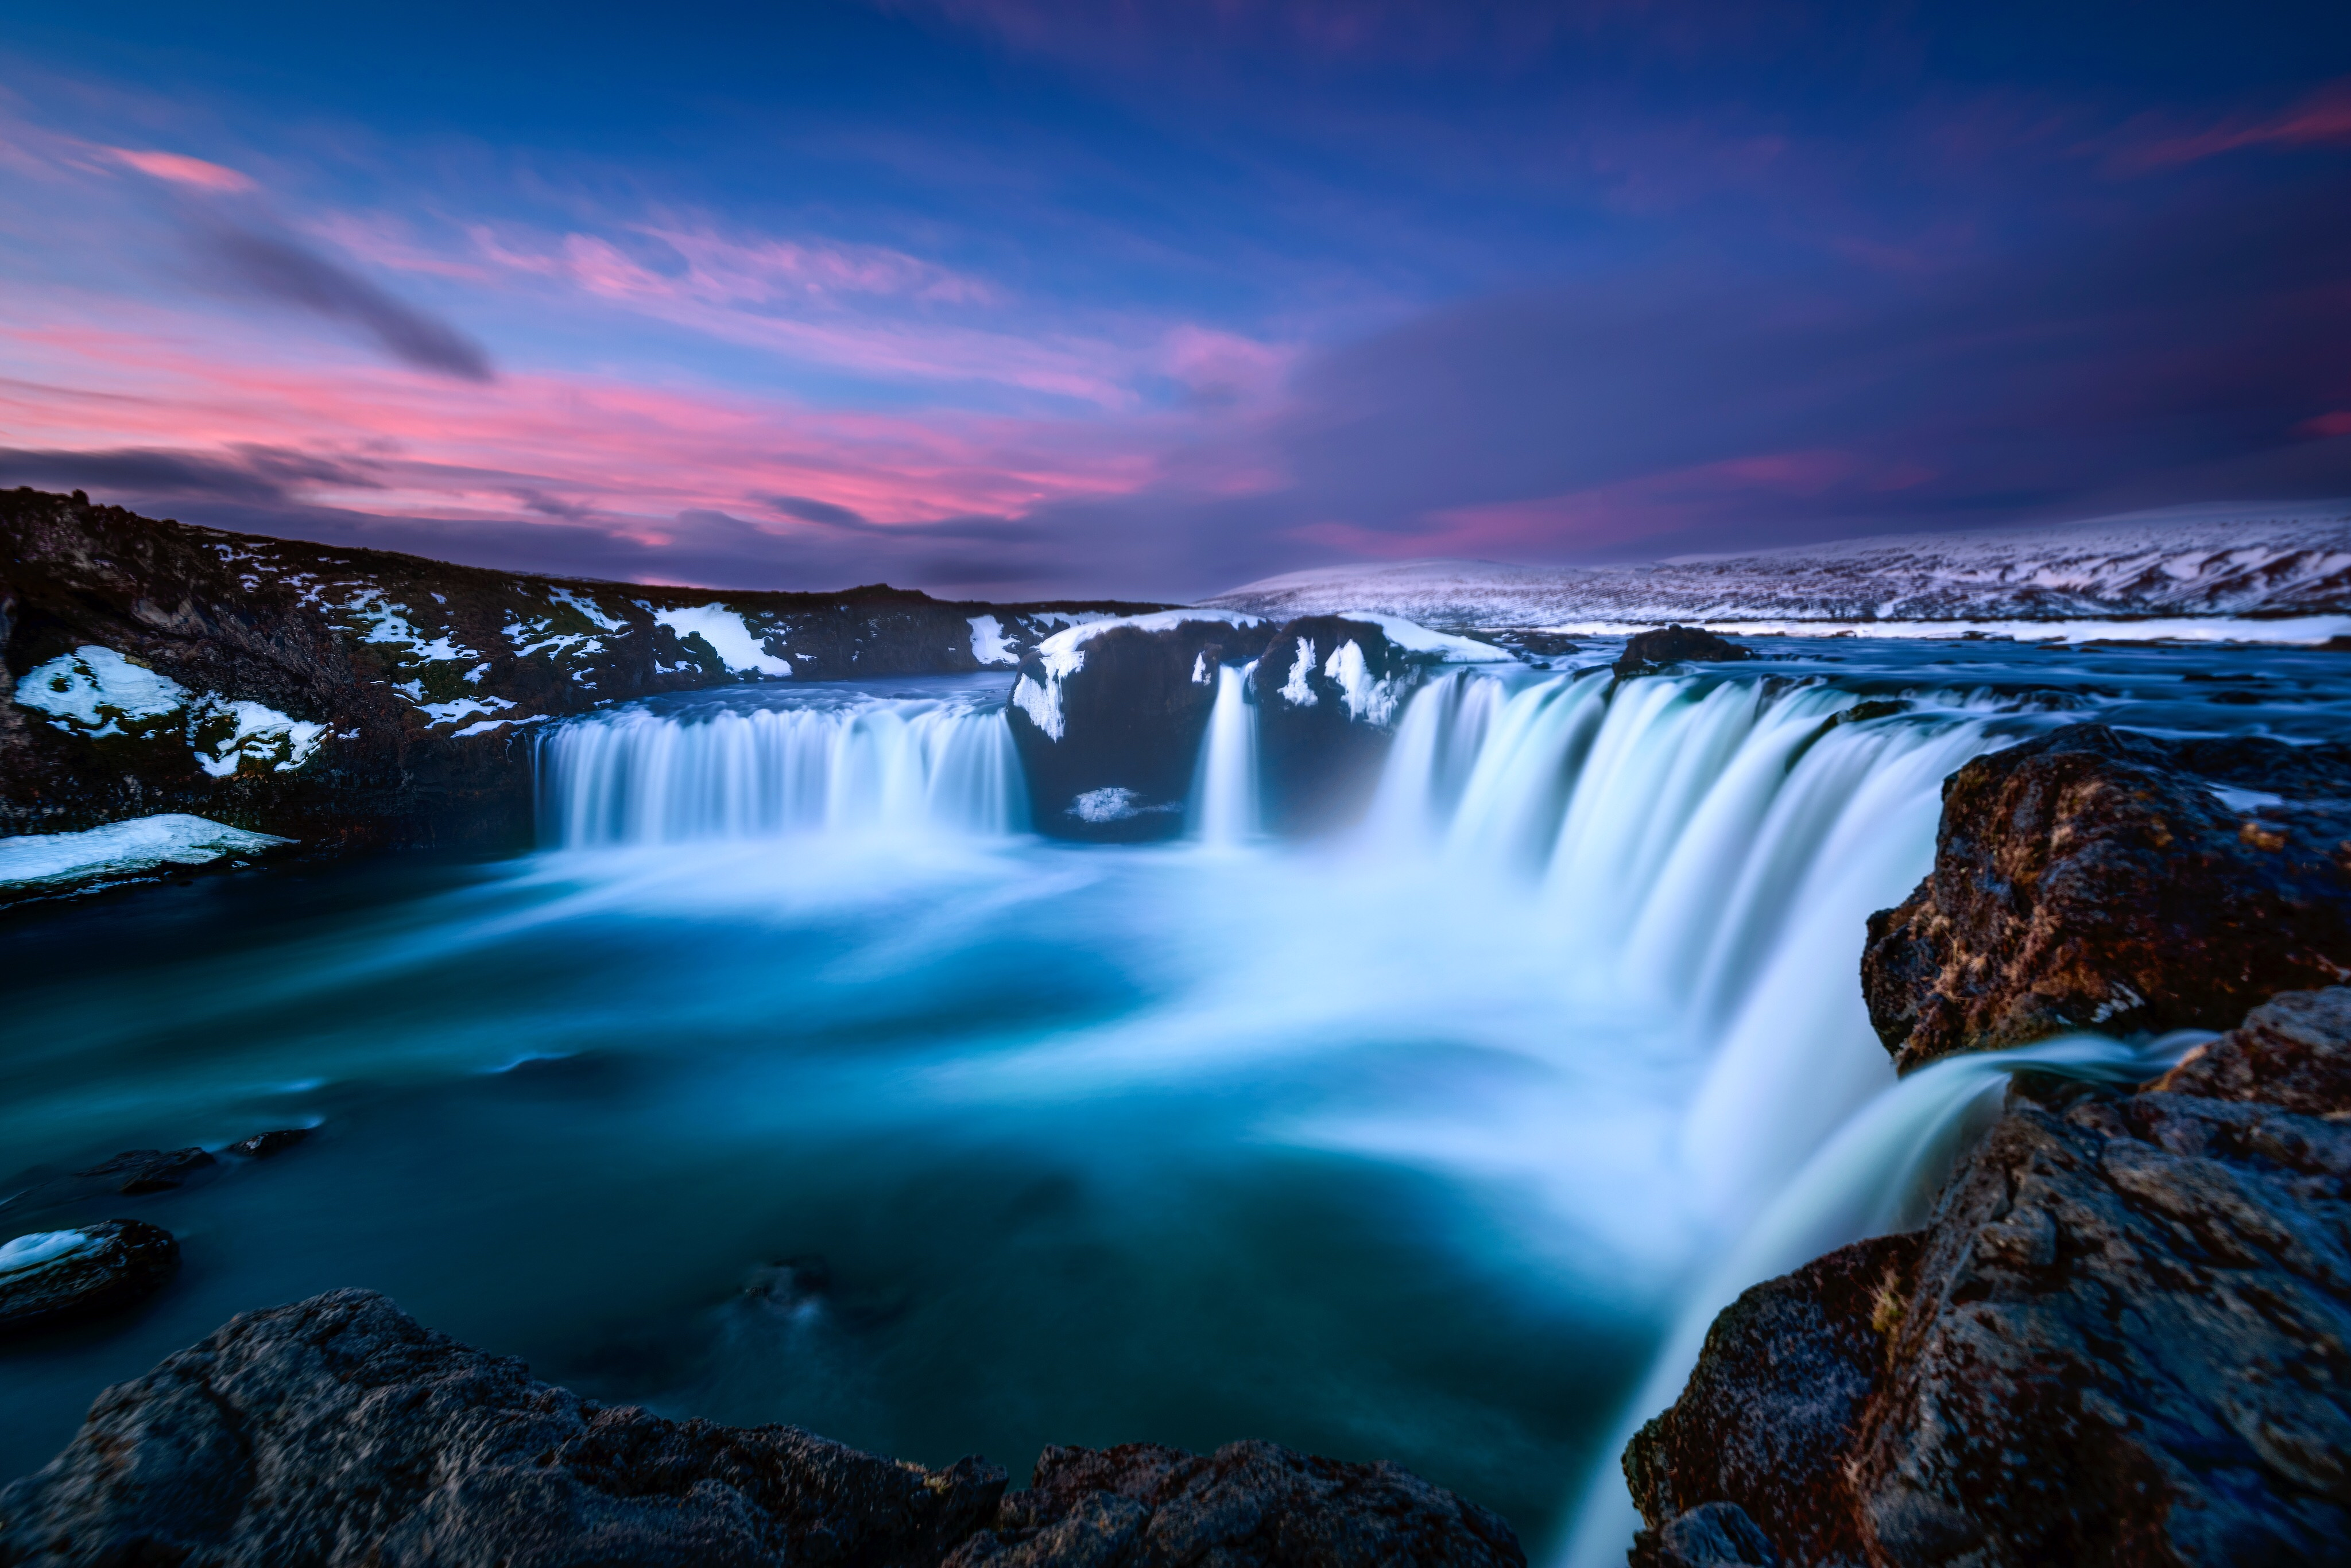 Dreamy Waterfall 4k Hd Nature 4k Wallpapers Images Backgrounds Photos And Pictures